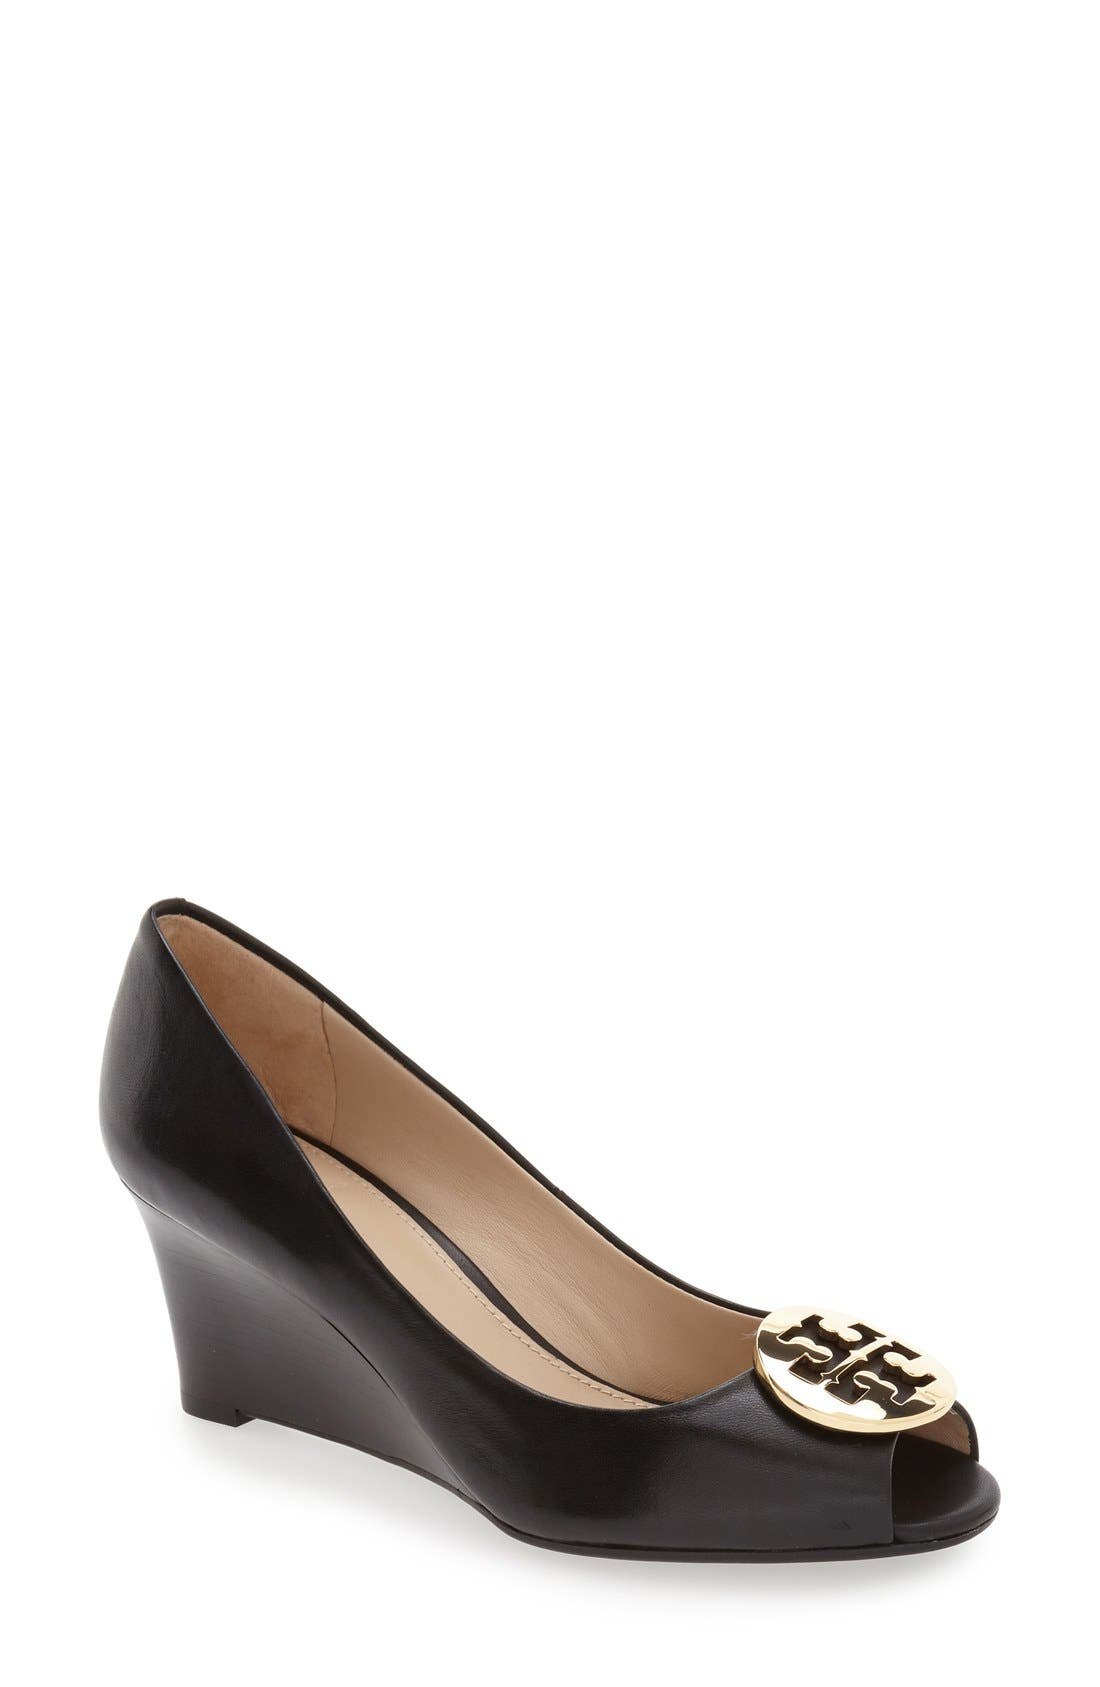 'Kara' Wedge Pump,                         Main,                         color,